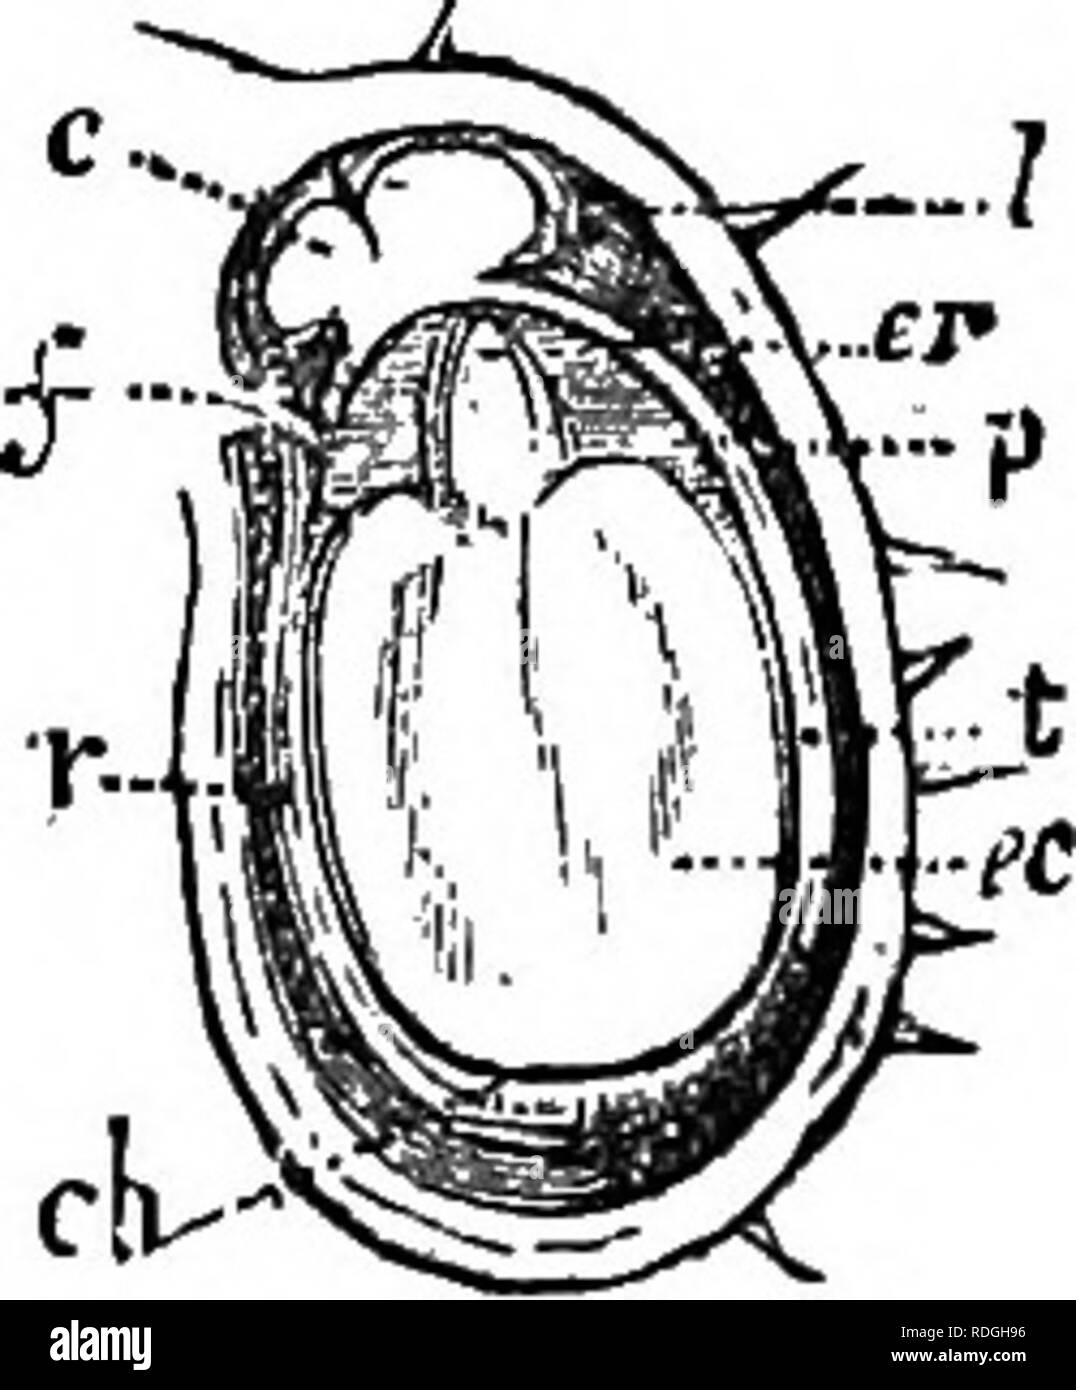 . A Manual of botany : being an introduction to the study of the structure, physiology, and classification of plants . Botany. SEED OR MA.TUEB OVULE. 329 it has been called by some an arillode. This arillode, after growing downwards, may be reflected upwards, so as to cover the foramen. On the testa, at various points, there are pro- â duced at times cellular bodies, which are not dependent on fertilisation, to which the name of strophioles (strophiolum, a little garland), or car- mioales {caruncula, a little piece of flesh), has been given, the seeds being strophiolate or carunculate. These t - Stock Image